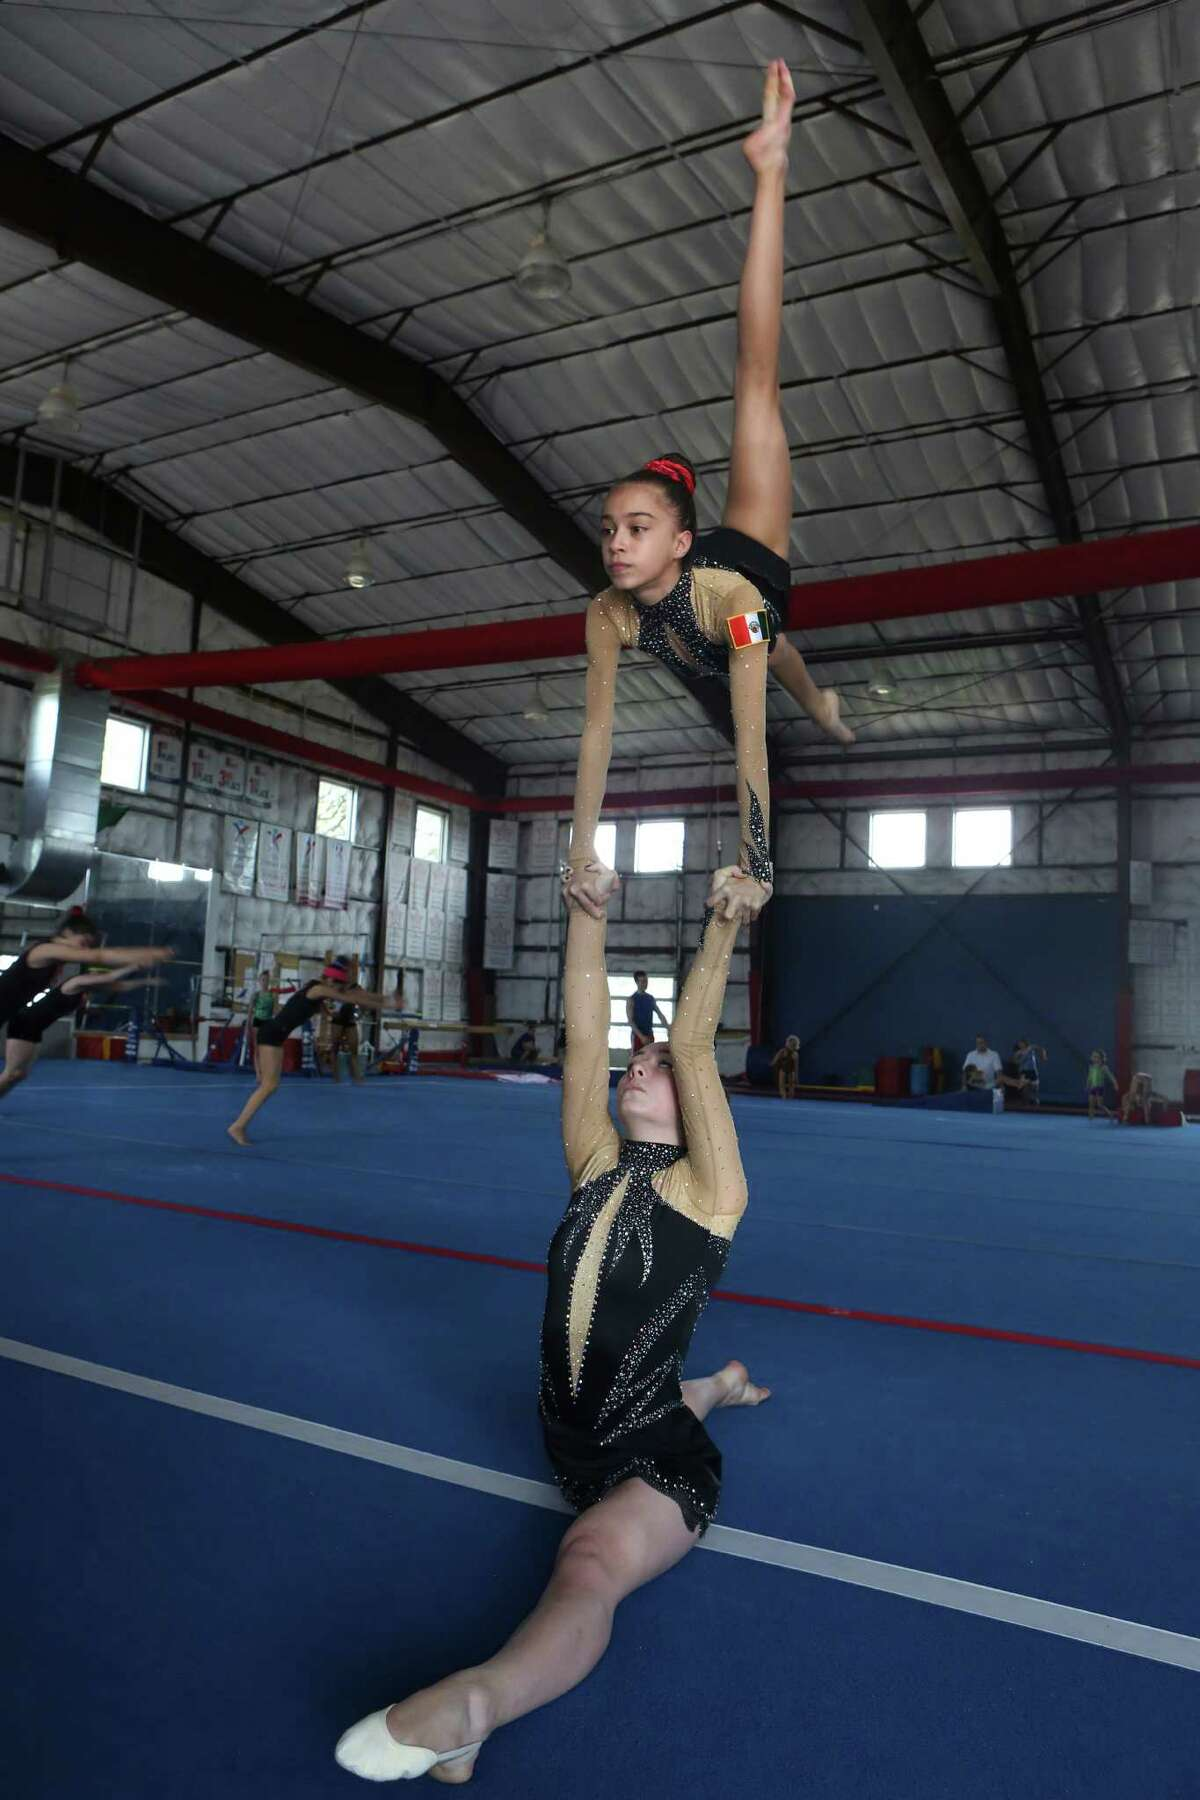 Acrobats Isabella Melendez, 13, and Ani Cavallero, 17 will represent Mexico at the 2014 Acrobatic Gymnastics World Championships in Paris, France July 2 - 5. The girls became Team Mexico when the coach of their gym, Vladimir Vladiv paired them together two years ago to boost participation in the sport from countries around the world. The girls practice three routines five hours a day, work that's paid off with 15 gold medals from local, regional, state and national competitions.